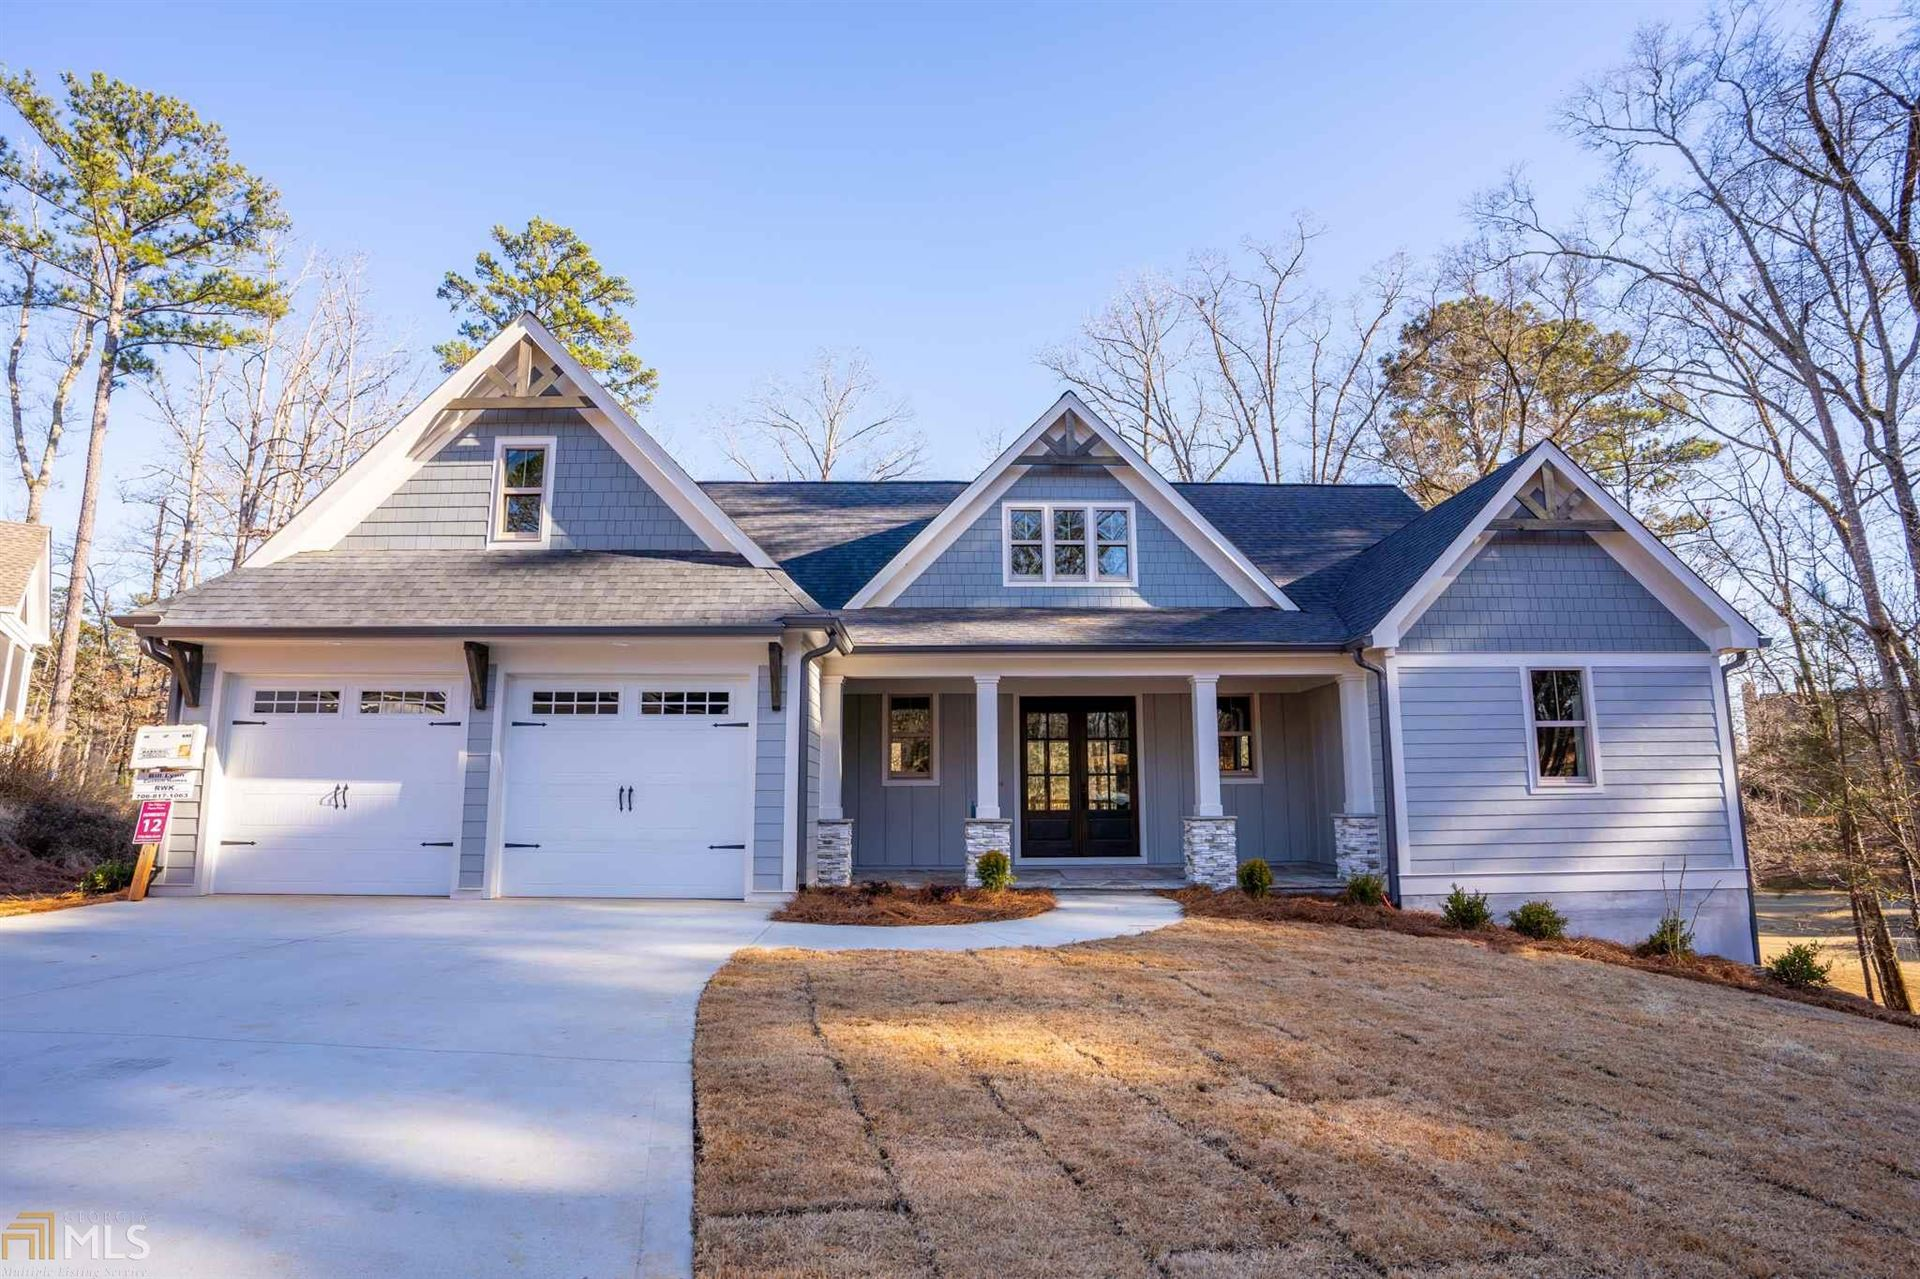 1100 Osprey Ln, Greensboro, GA 30642 - MLS#: 8890312